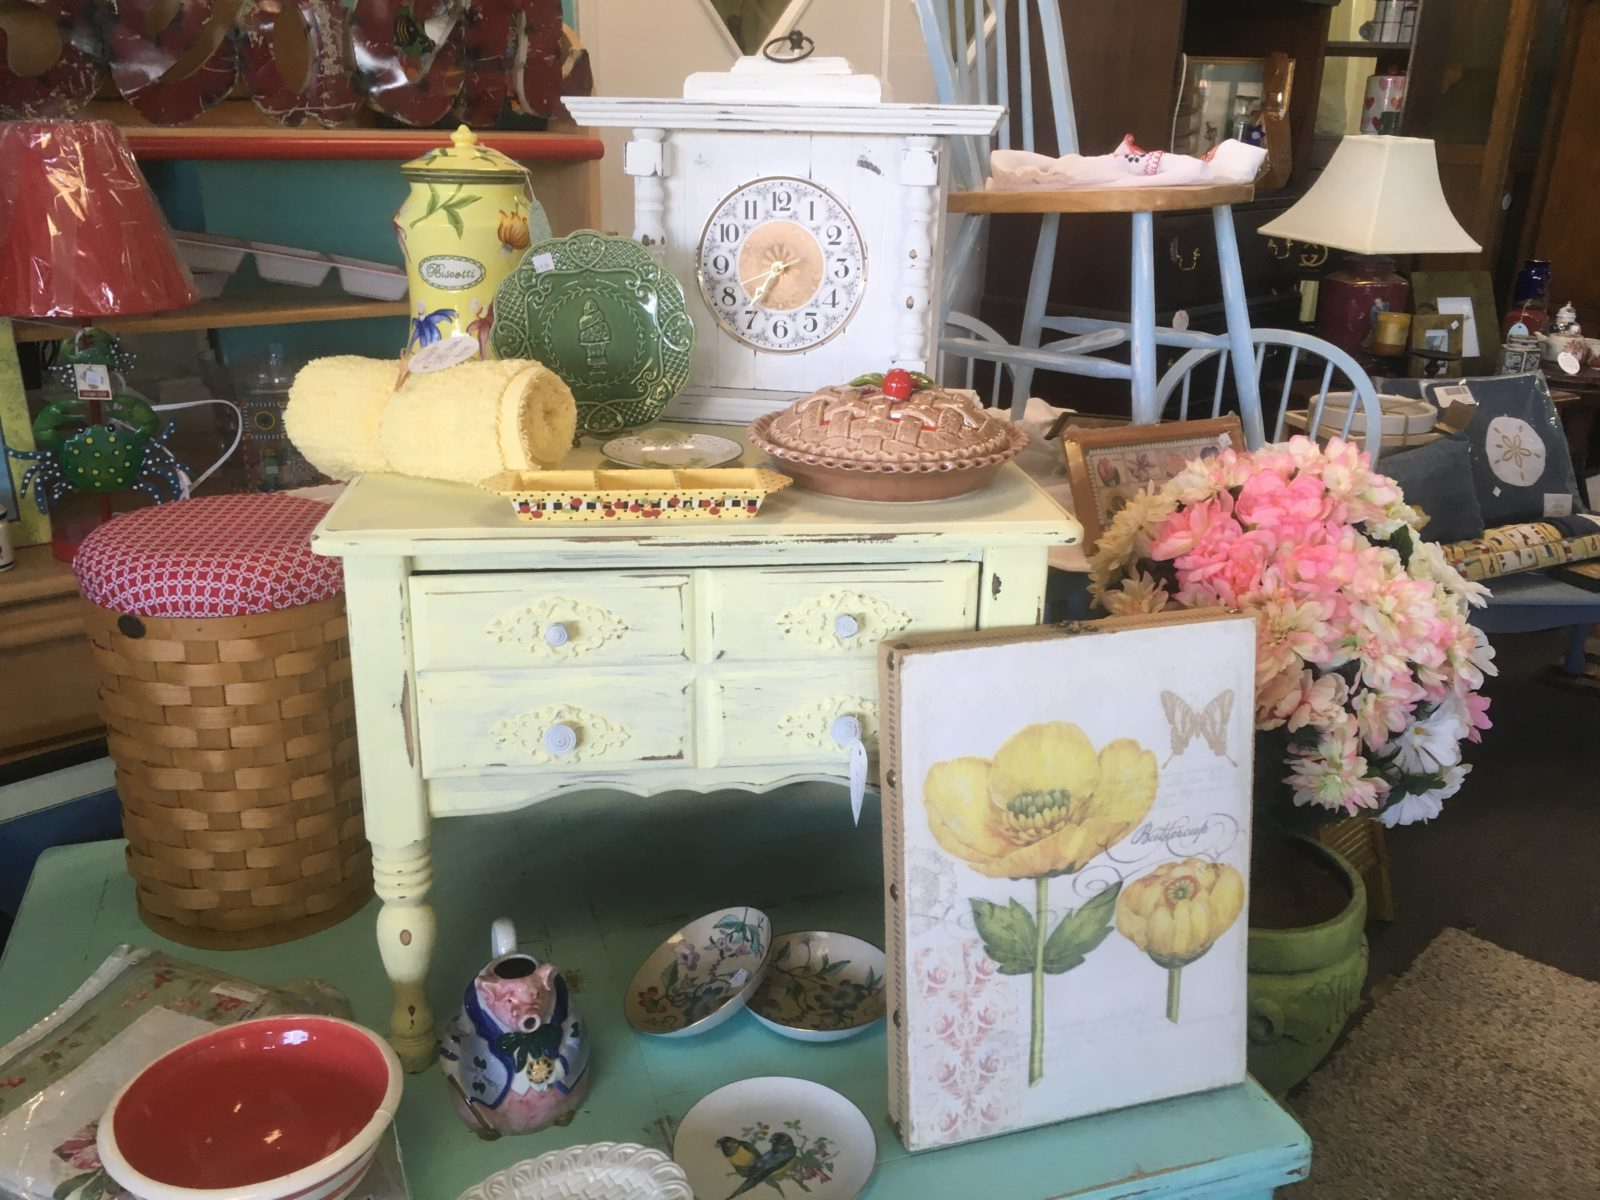 Unique Decorative Accessories • We carry vintage and new decorative accessories for your home from artwork to unique ceramics, lamps, picture frames, items for your kitchen and dining room and so much more! Even items for your pets!